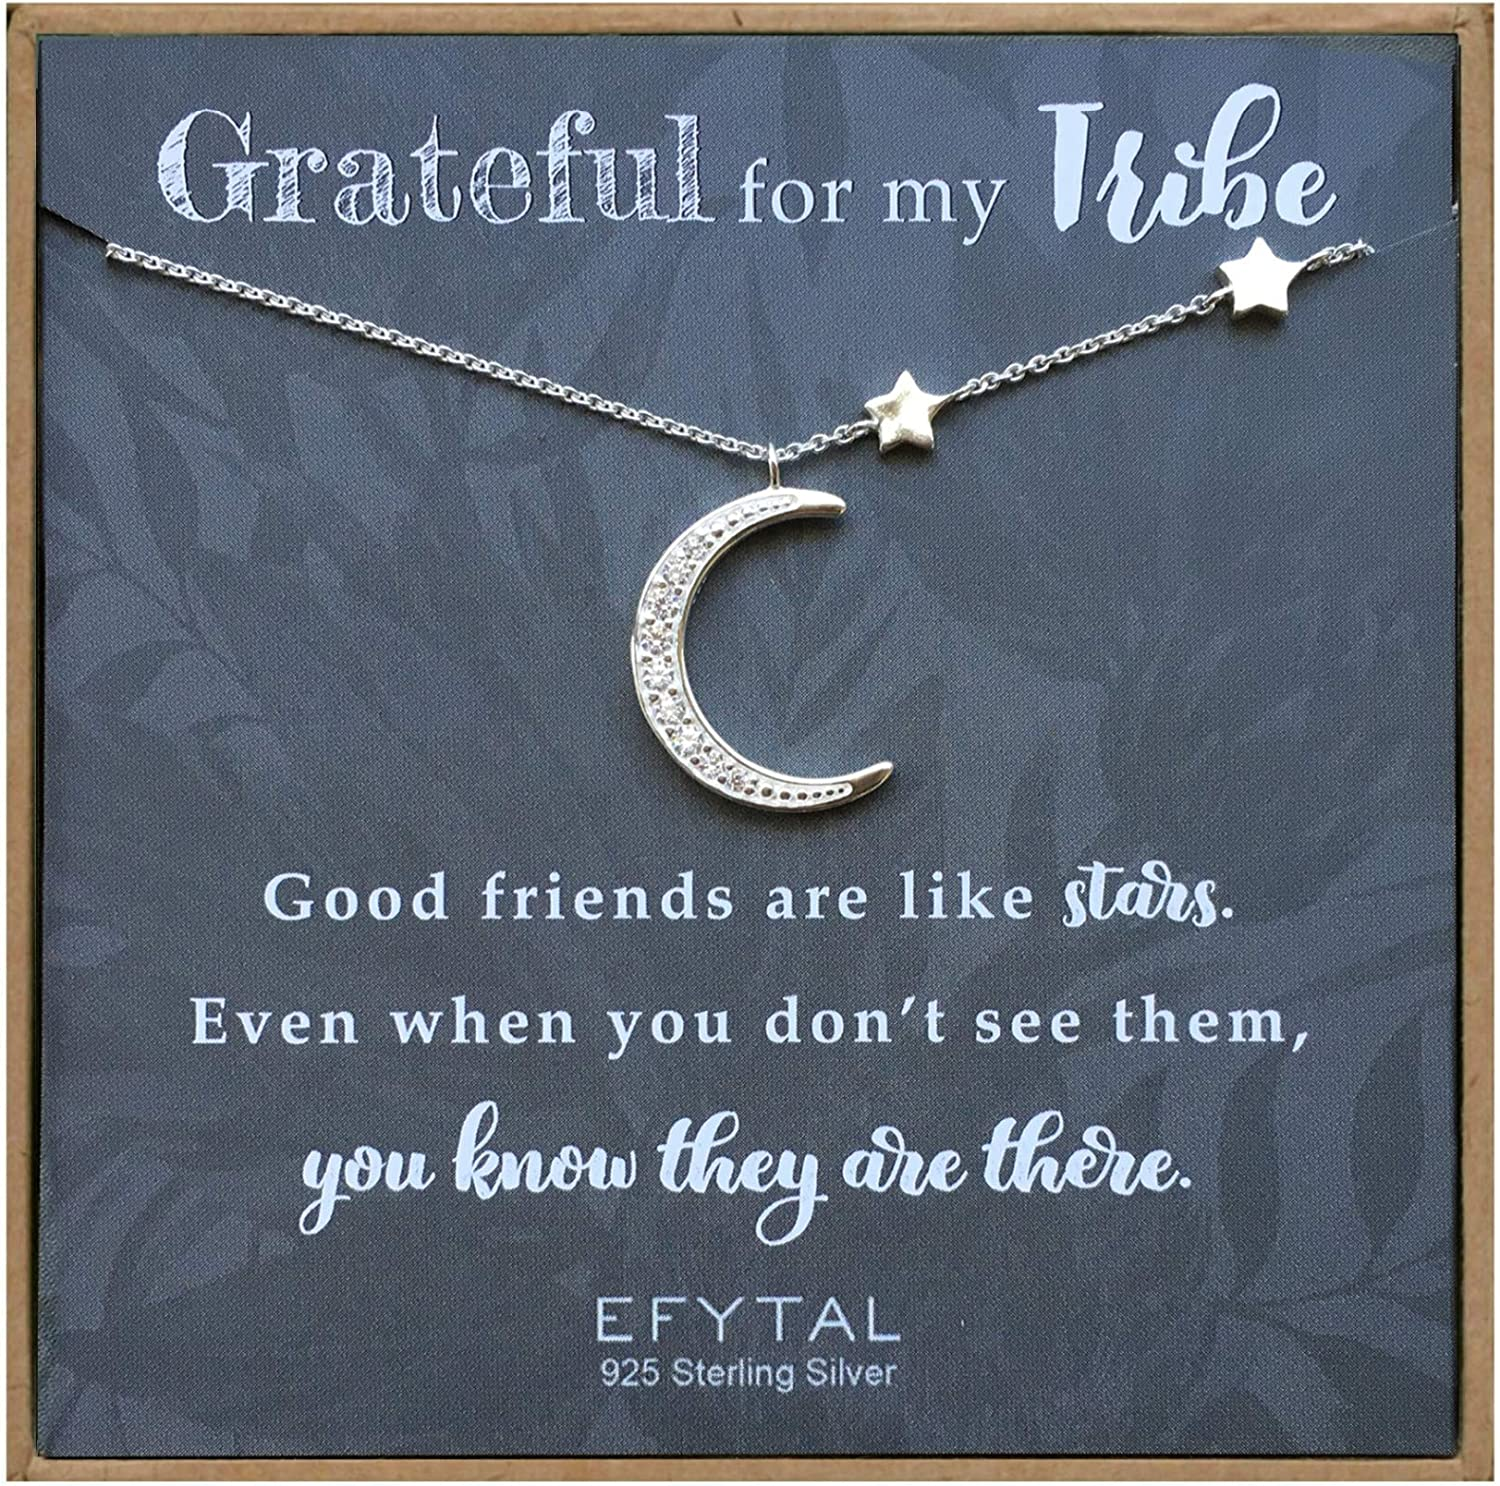 EFYTAL 925 Sterling Silver CZ Branded goods Moon Necklace and for New York Mall Friend Stars